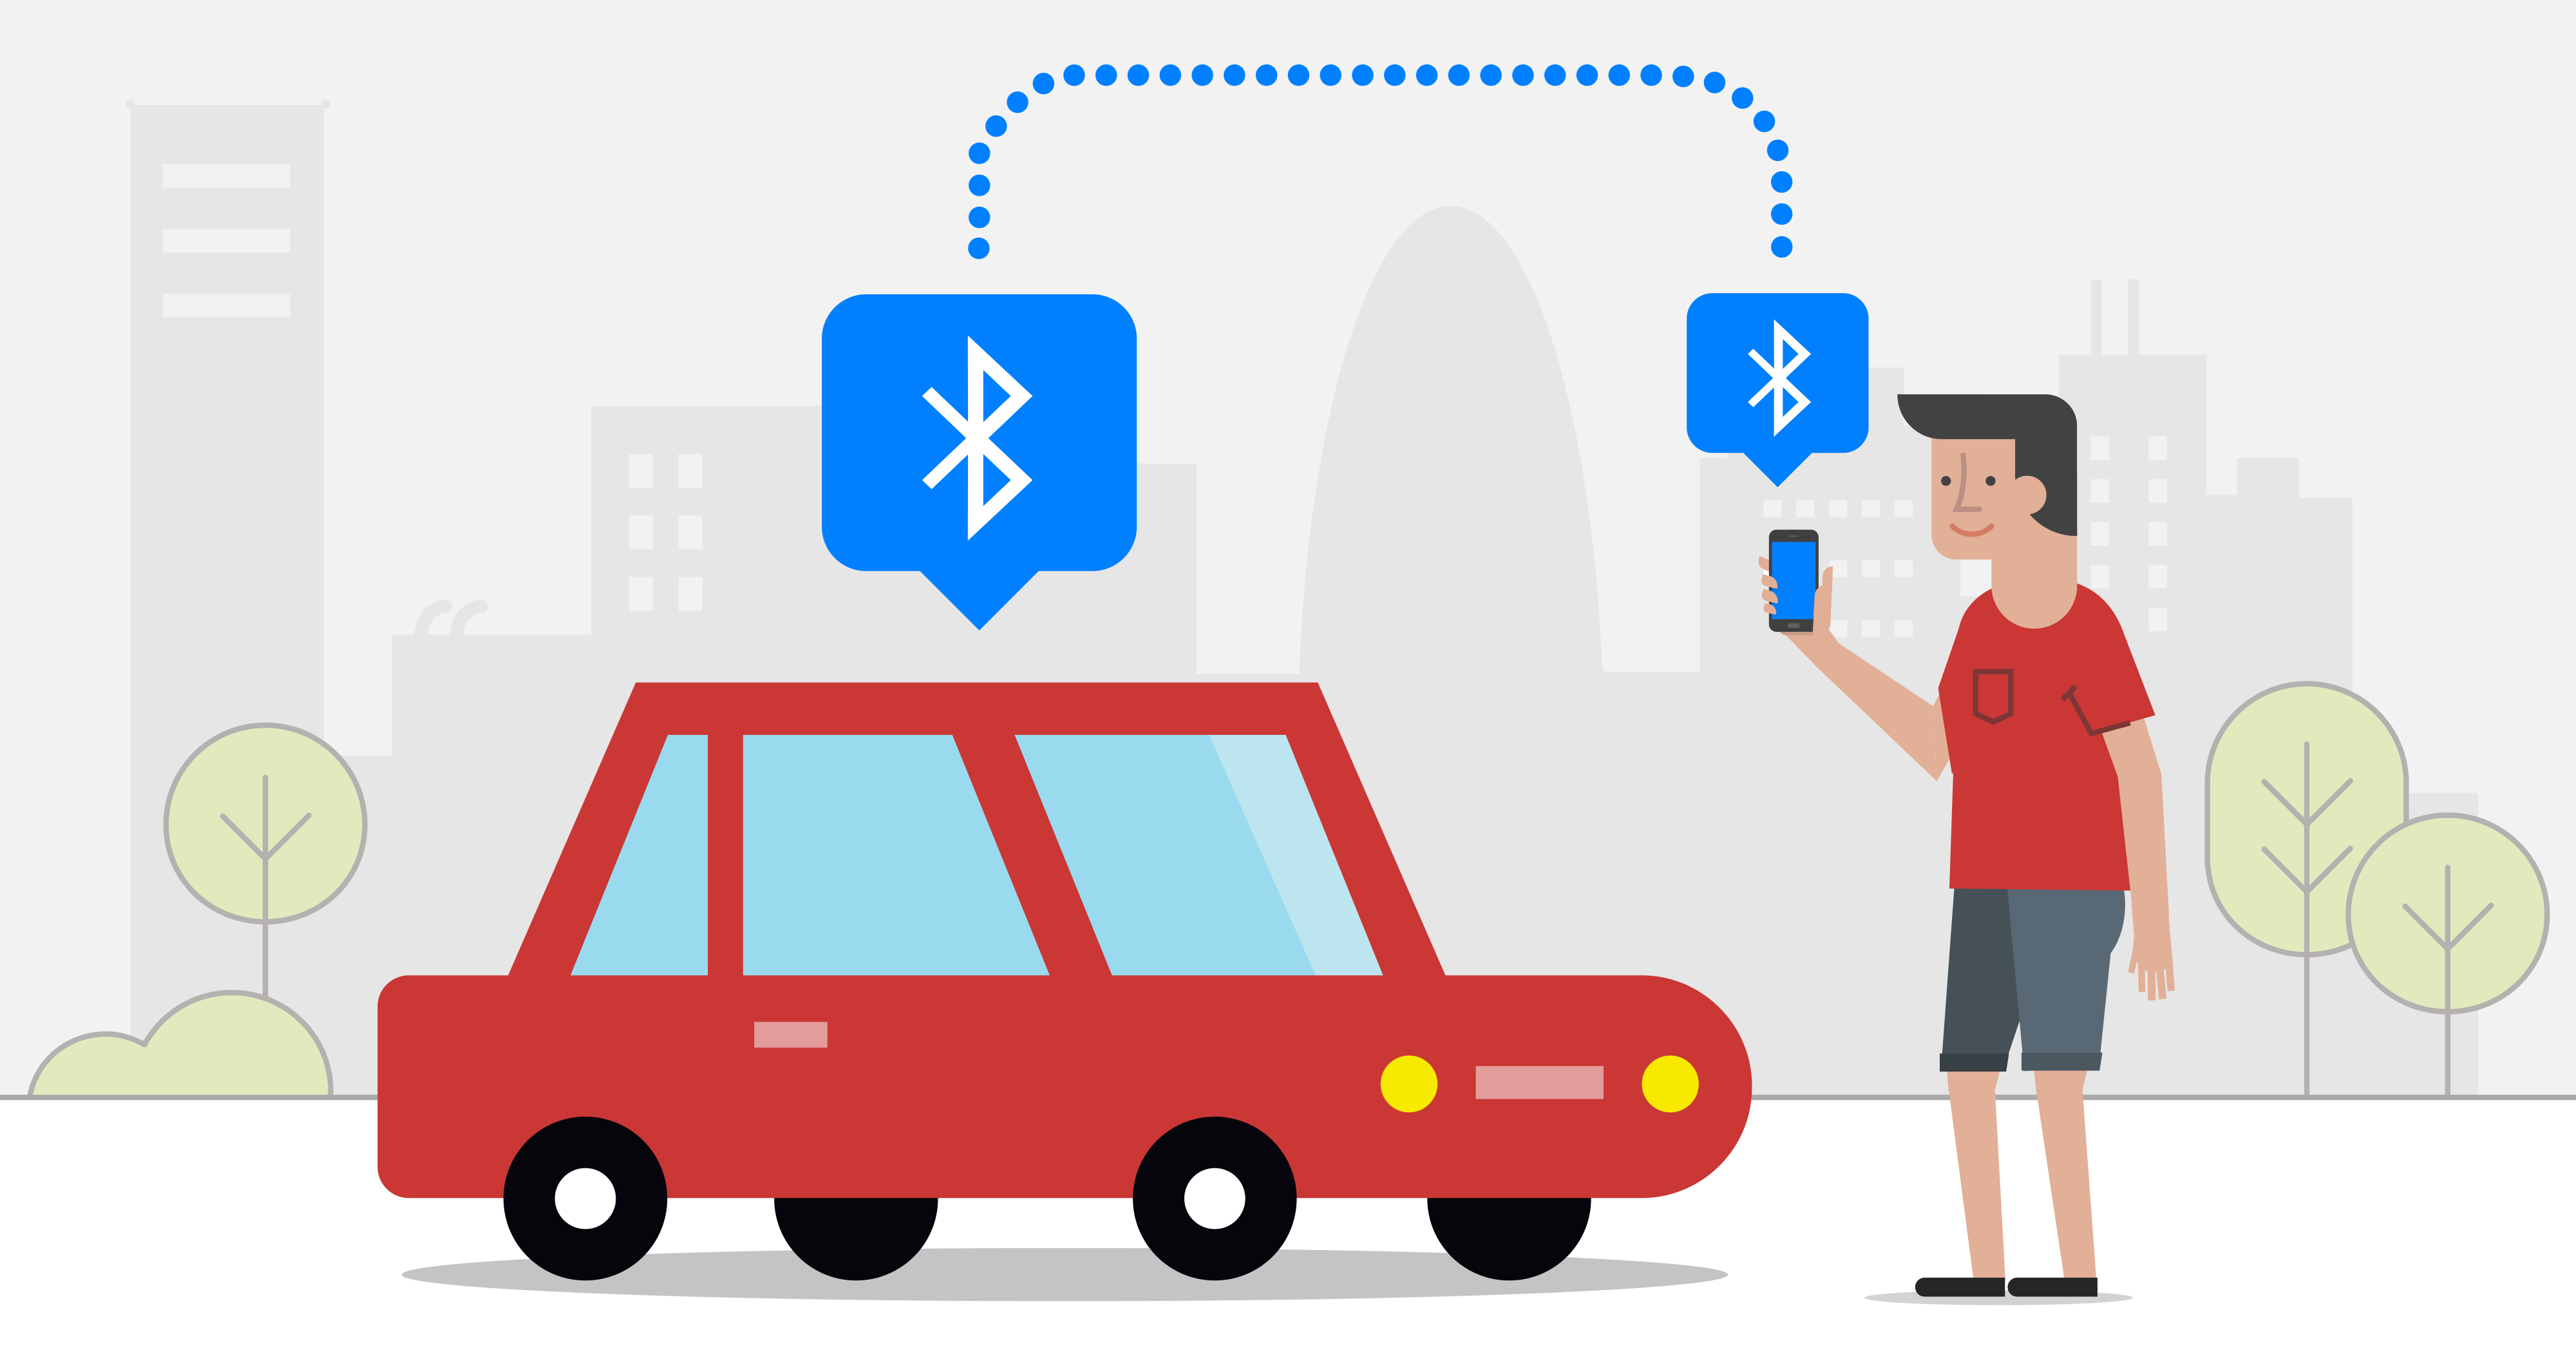 how to hook up bluetooth to your car Your iphone 8 won't pair to your car via bluetooth and you don't know why all you want to do is listen to your favorite music while you drive in this article, i'll explain what to do when your iphone 8 won't connect to car bluetooth so you can fix this problem for good.